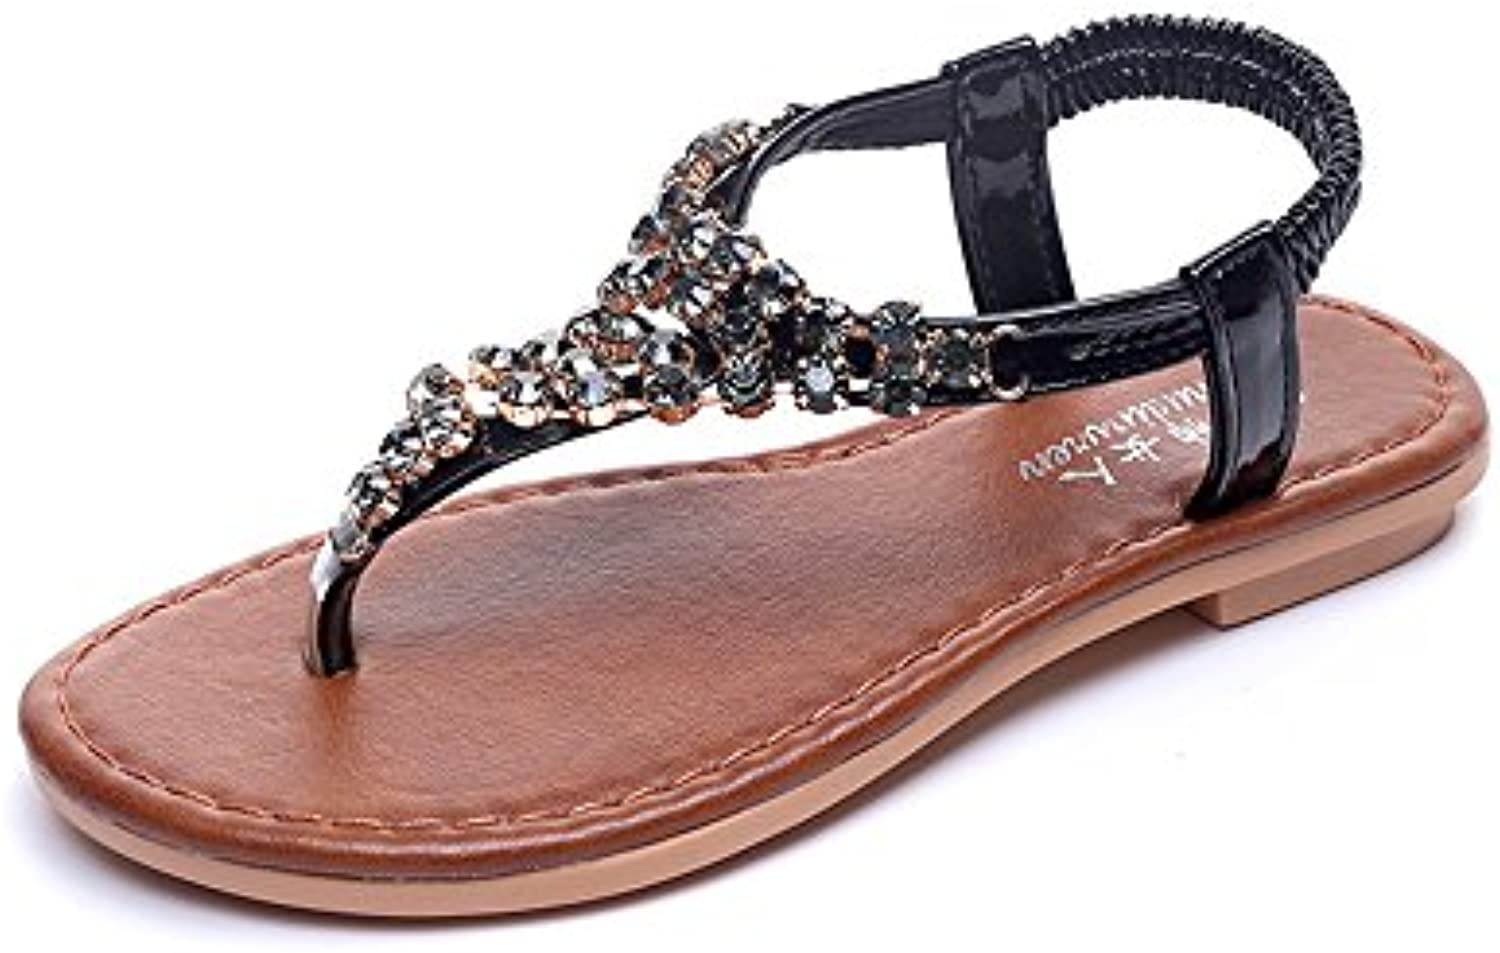 3916f0bdc3c Sandals ZHIRONG Women s Clip Toe Rhinestone (Color... T-Strap Bohemia  Bohemia Roman Parent Summer Beach Post Flip Flops Flat Shoes (Color.